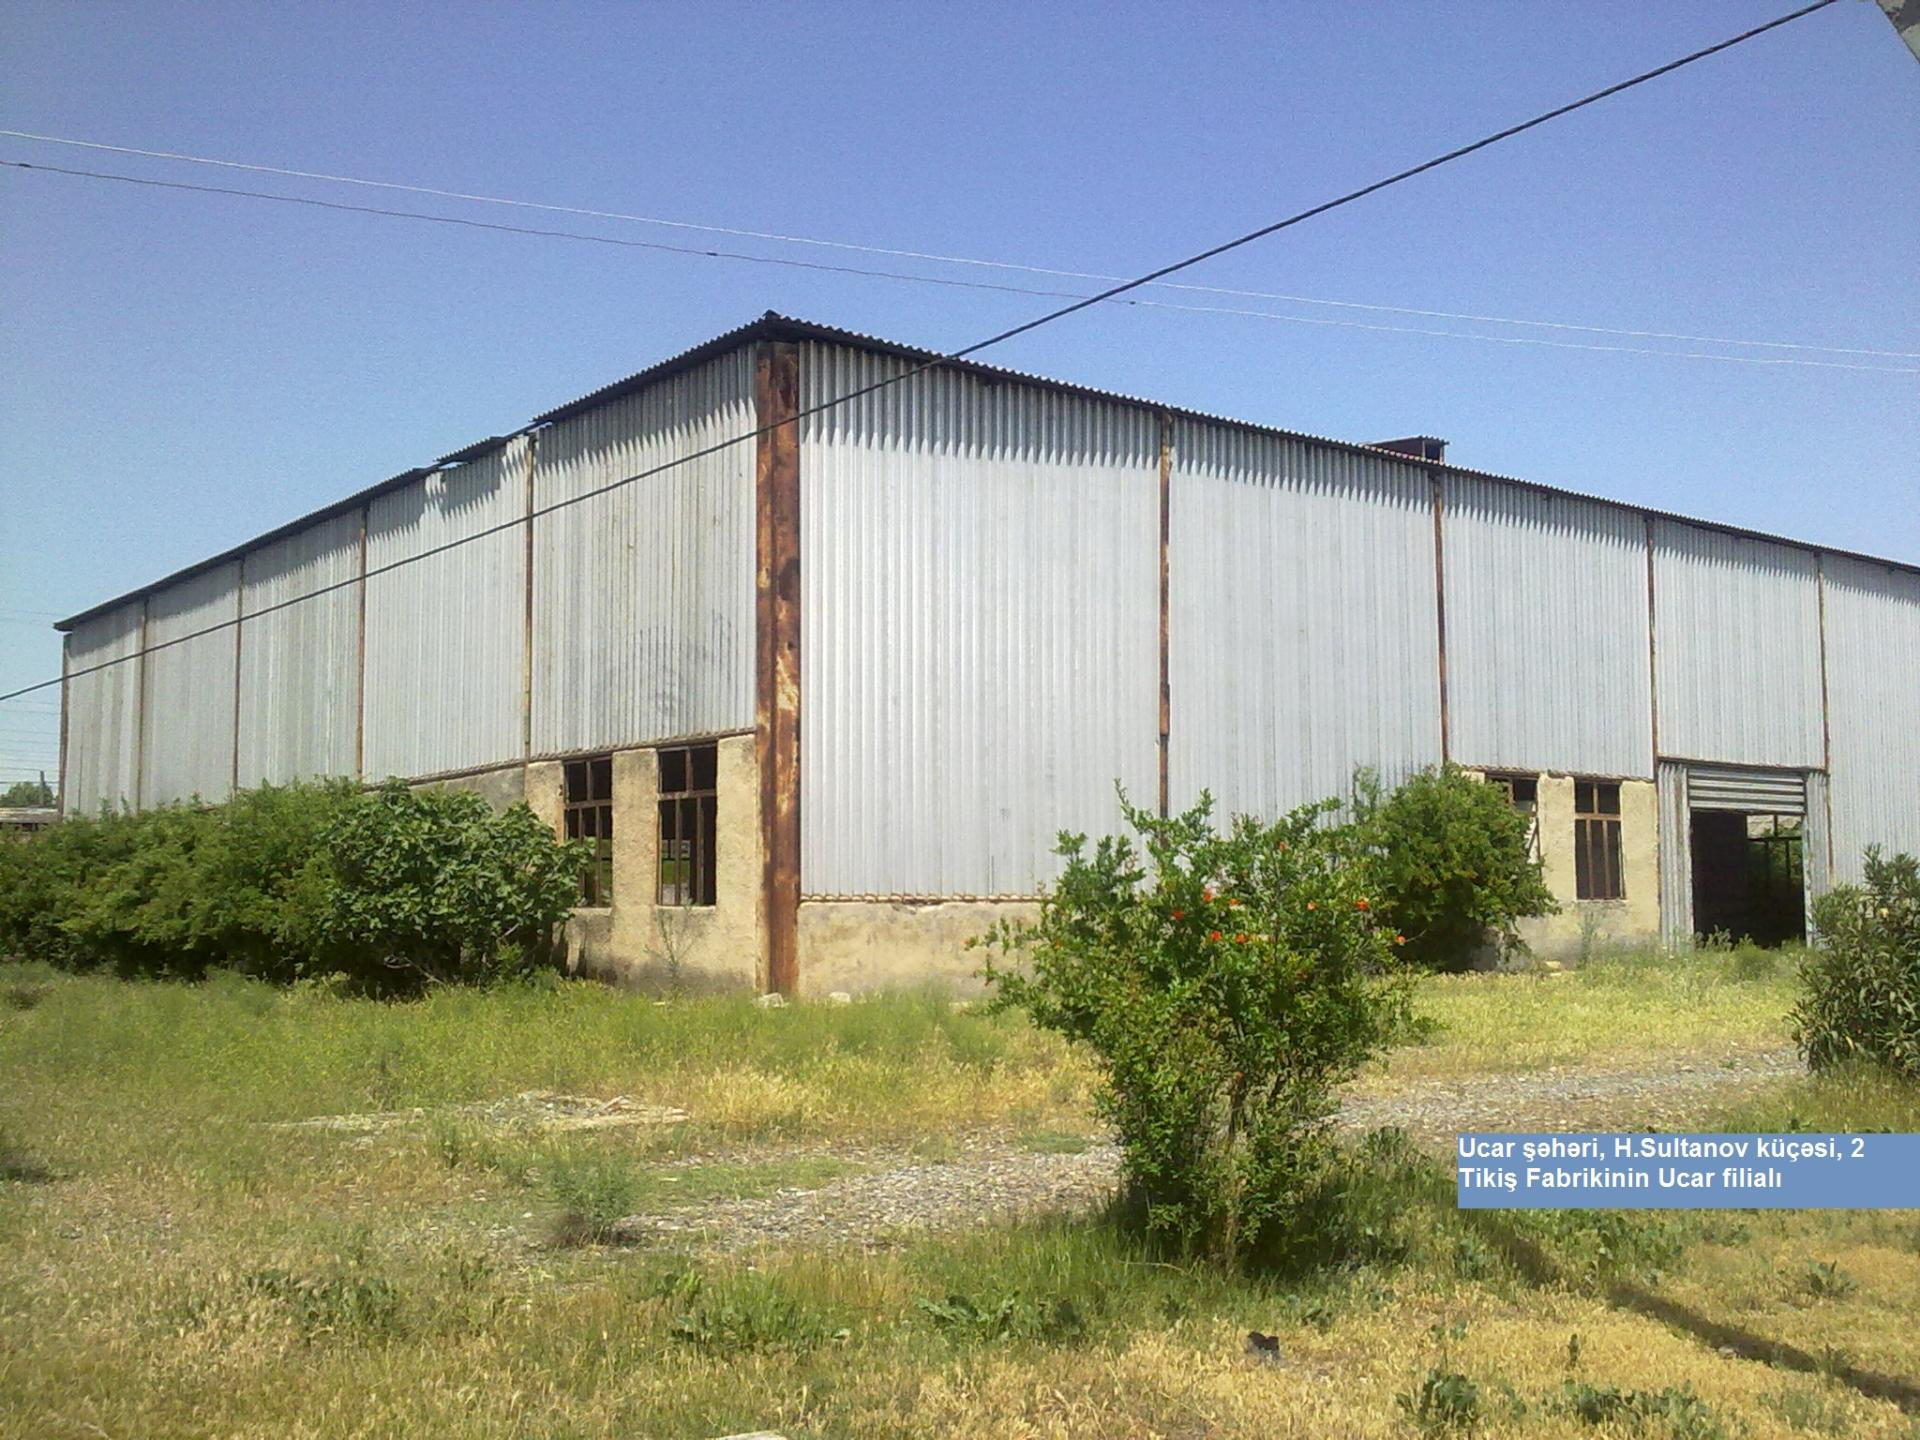 Azerbaijani State Committee on Property Issues puts up 98 properties for privatization (PHOTO)